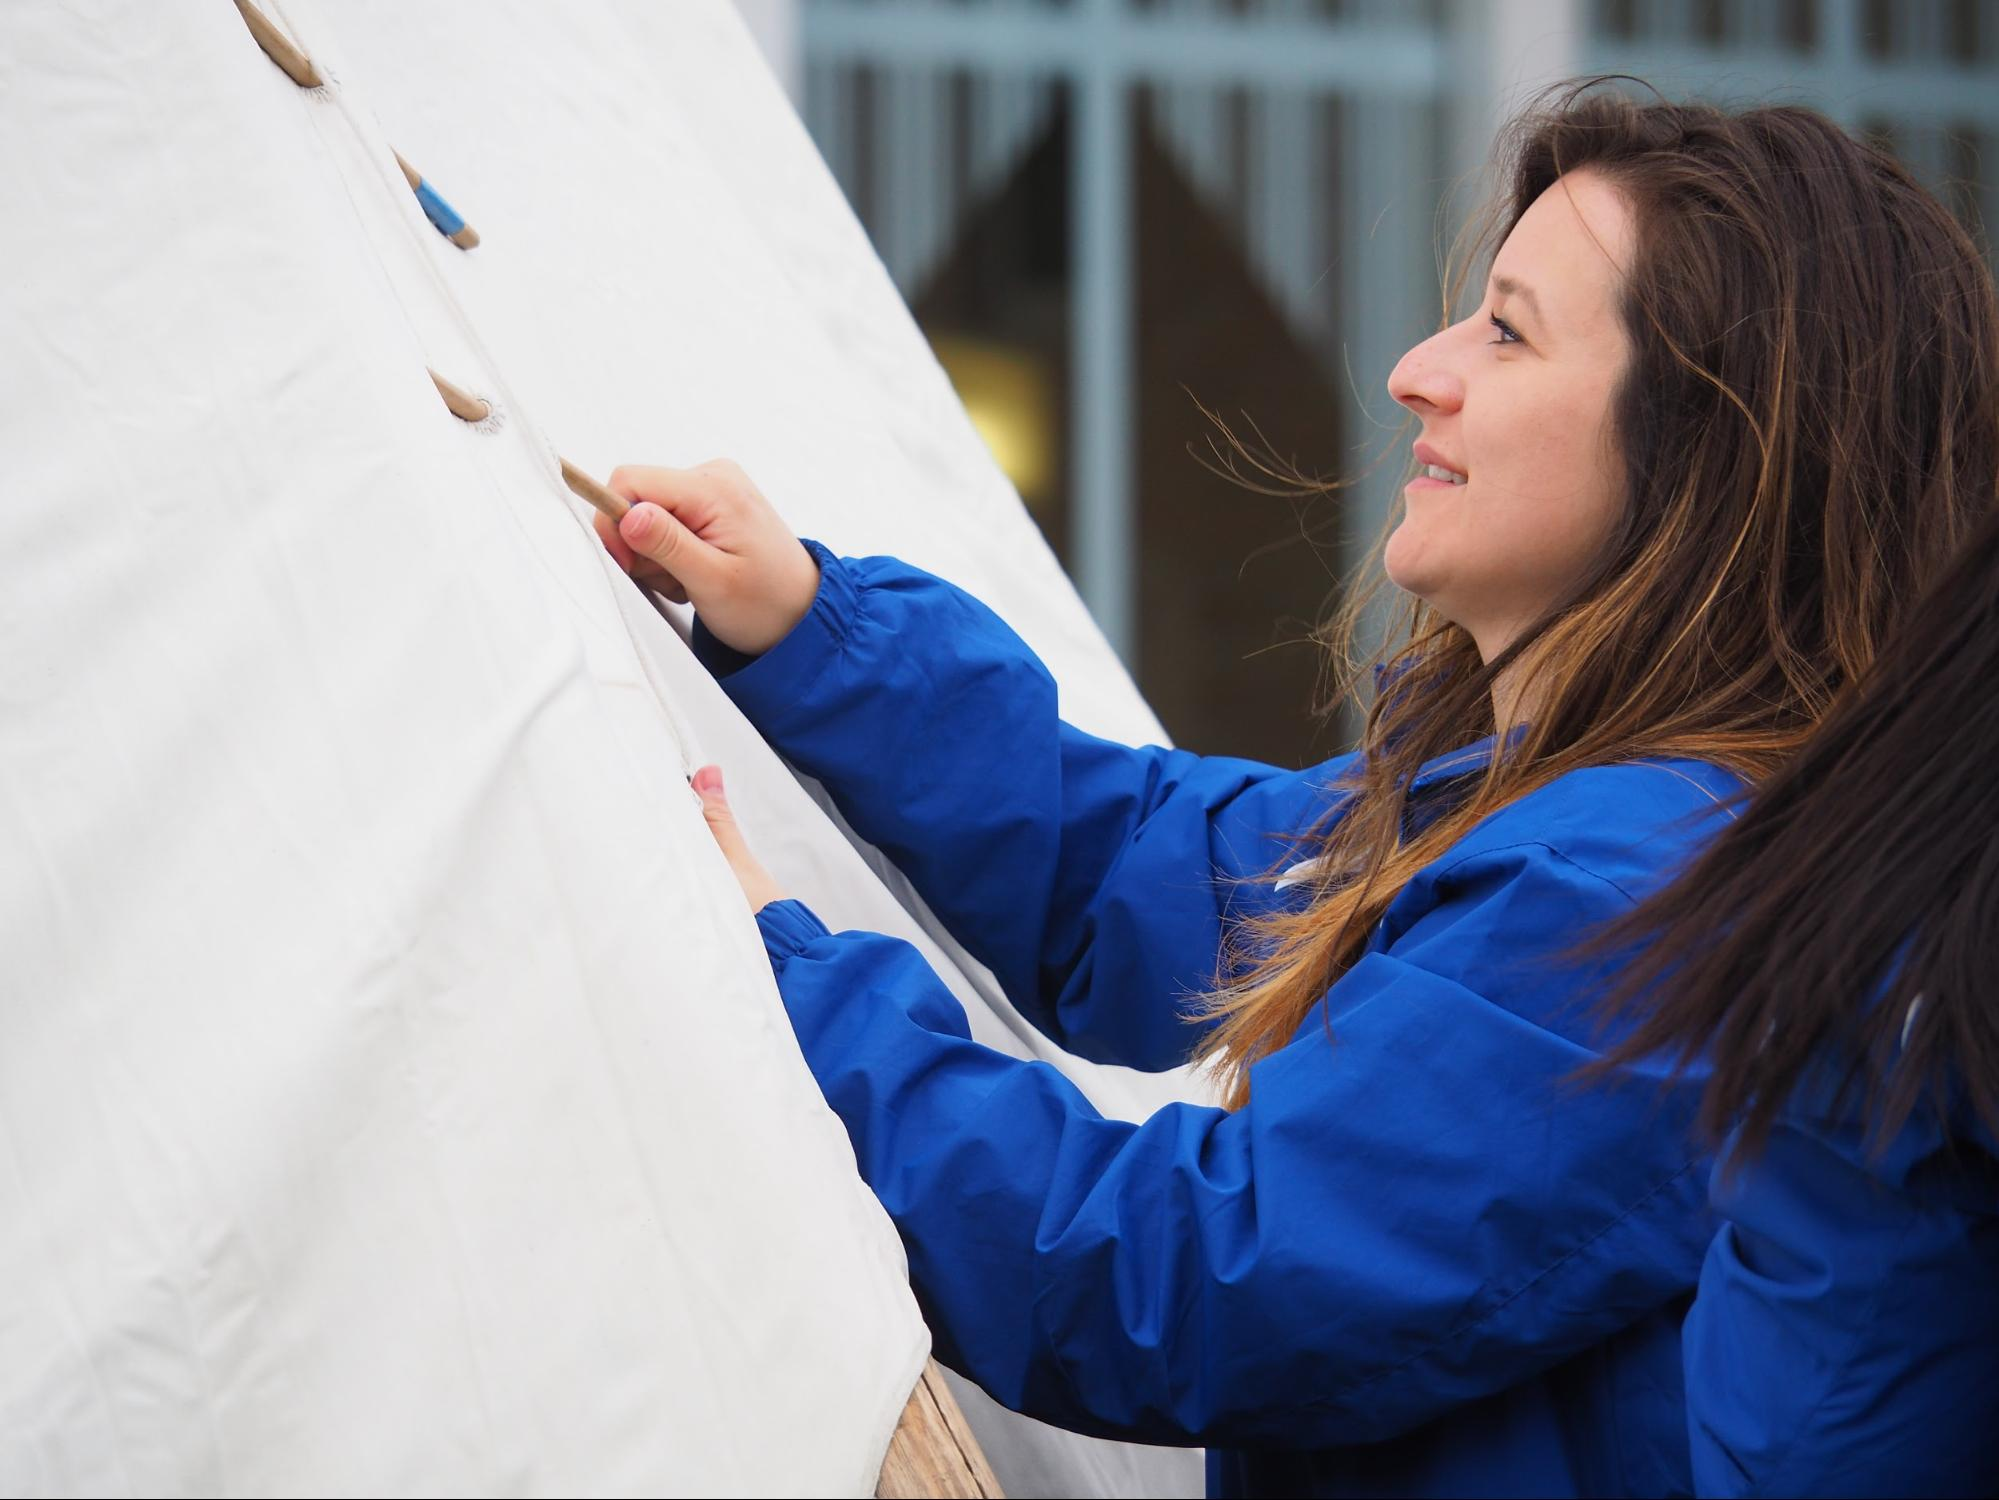 Admissions counselor Sonya Hernandez secures the tipi canvas above the entrance using lacing pins. Event attendees were invited to help Stately raise the tipi. (April Carlson / The Metropolitan)